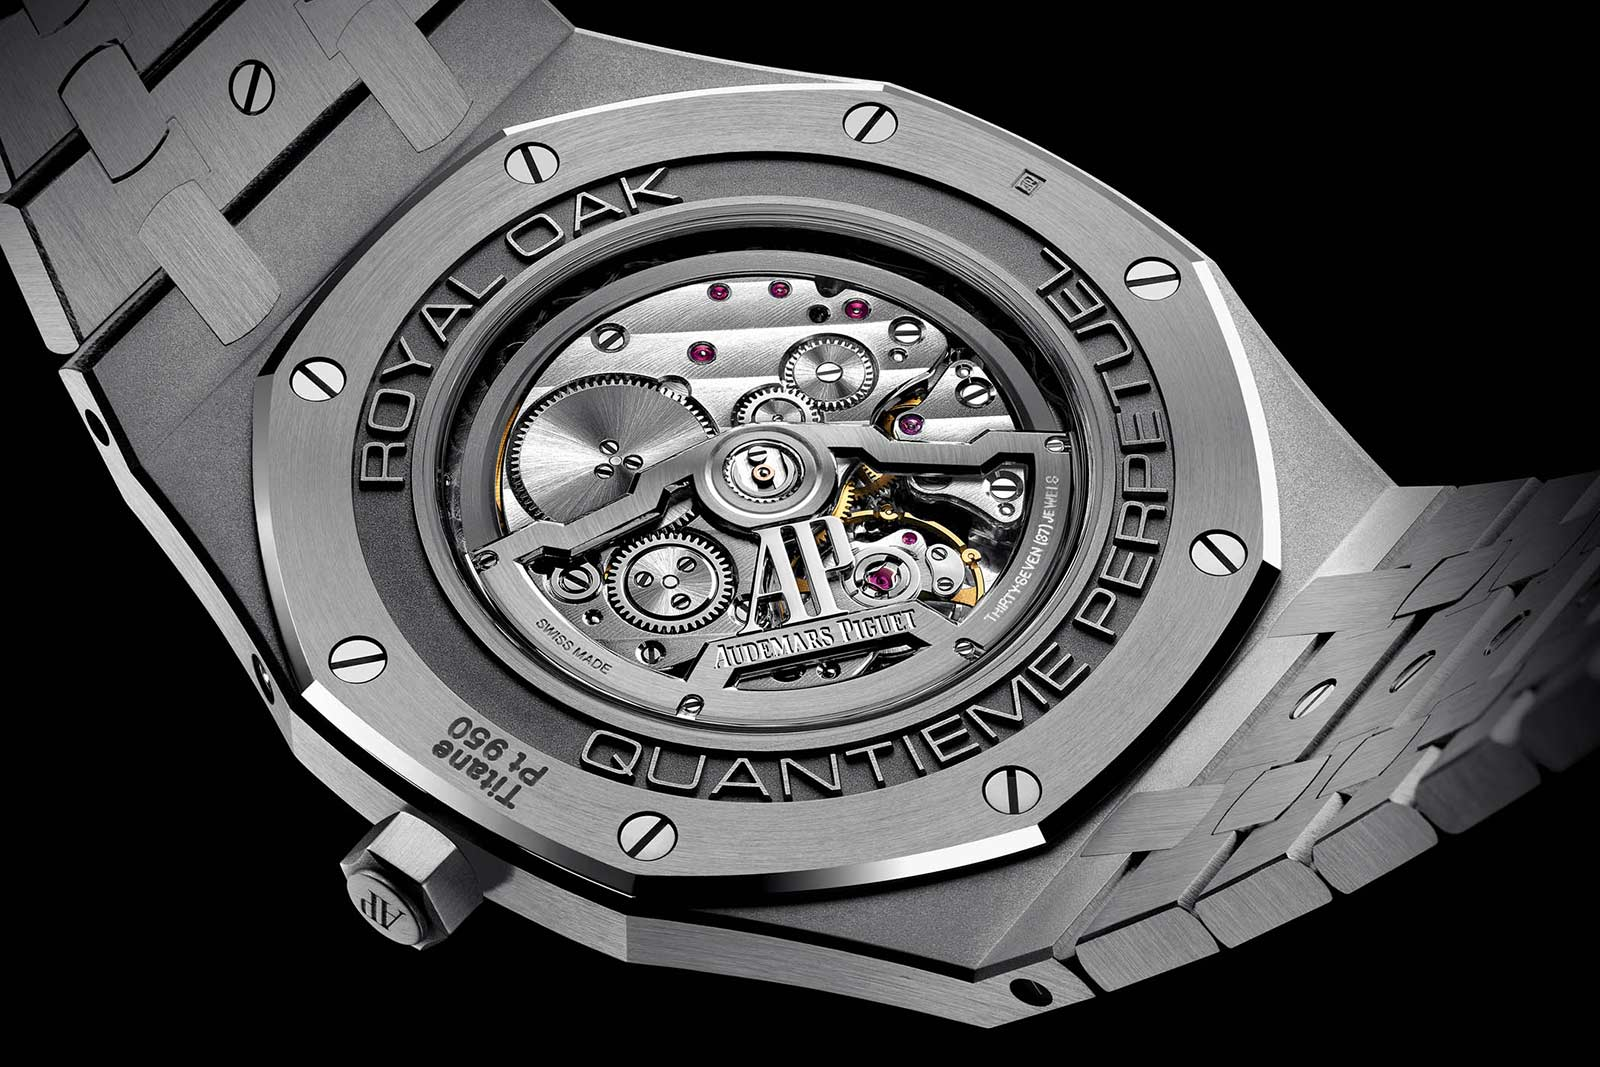 Audemars Piguet Royal Oak Selfwinding Perpetual Calendar Ultra-thin